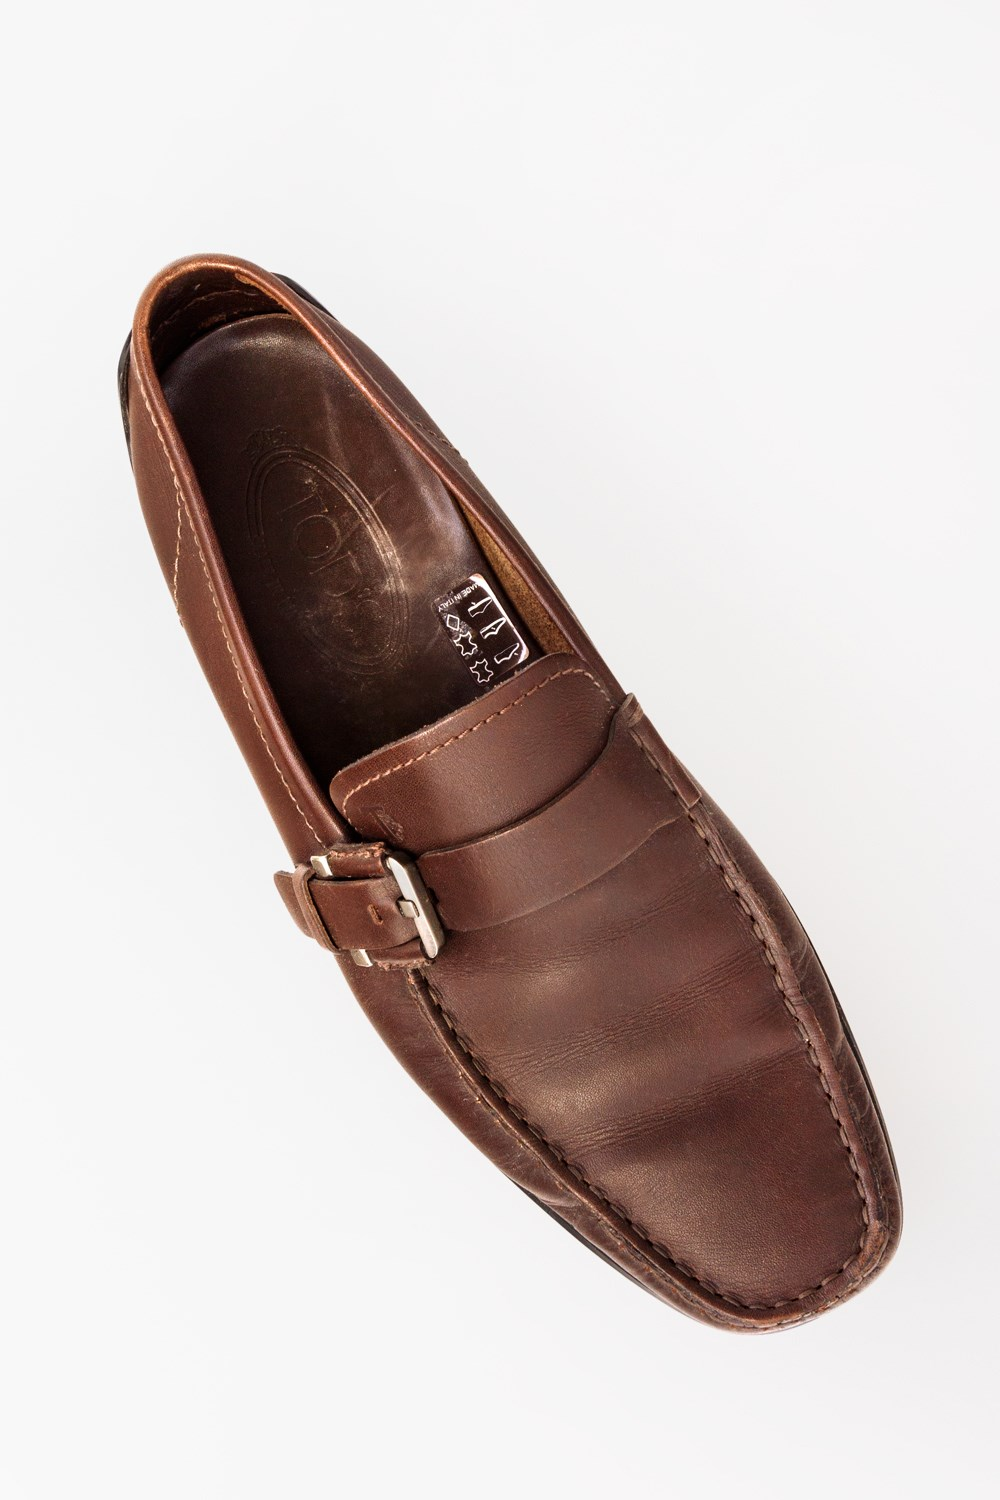 c28890b47a2 Brown Leather Loafers with Buckle Size Fit 40 5 Loafers